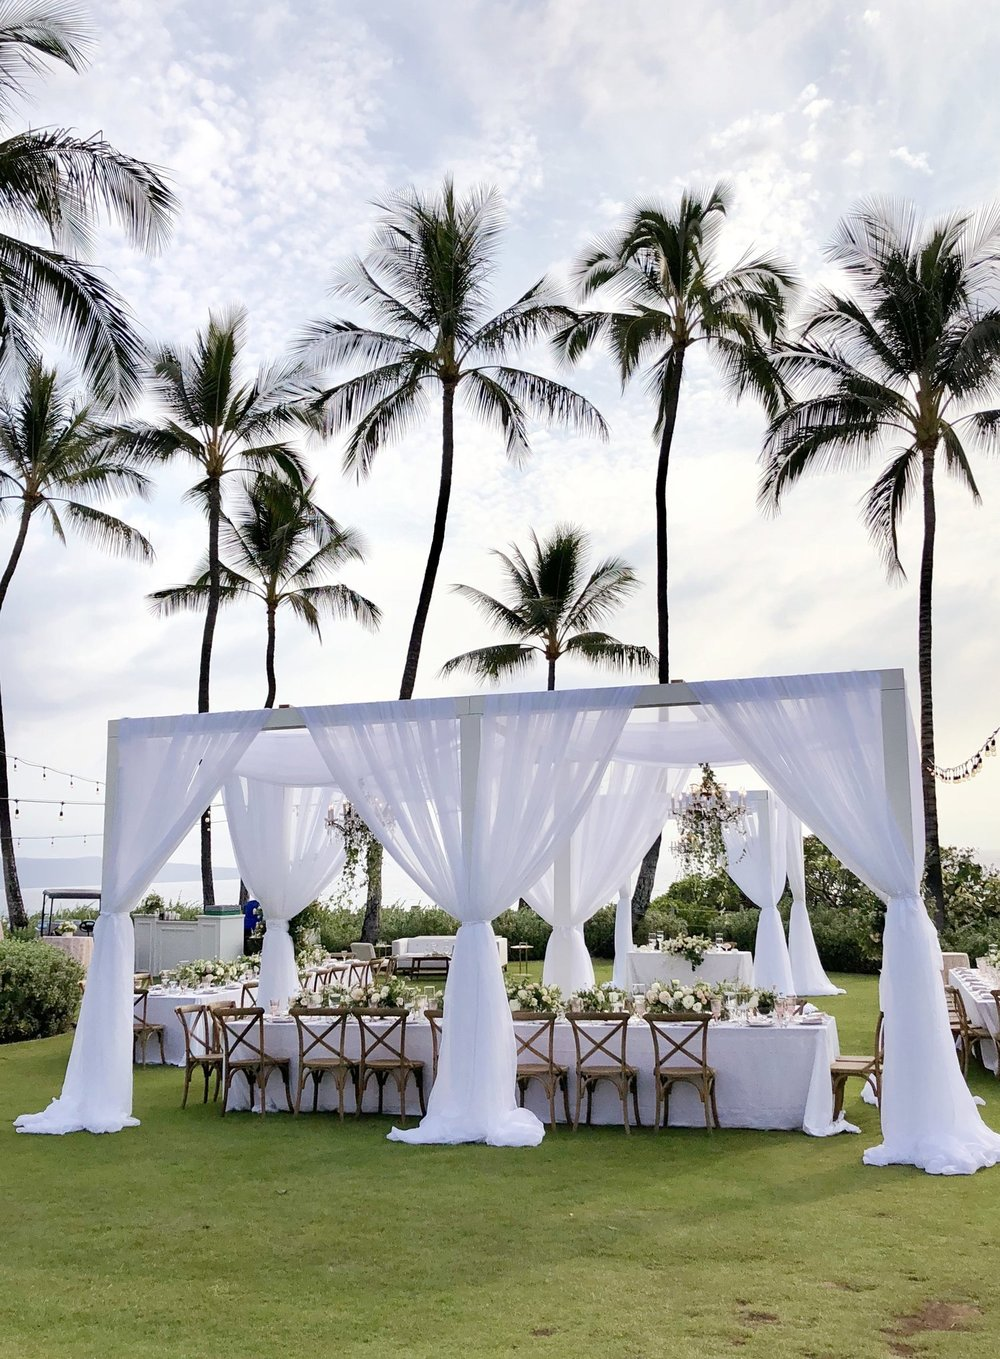 signature-maui-equipment-rentals-decor-for-weddings-in-maui-hawaii 3.jpg